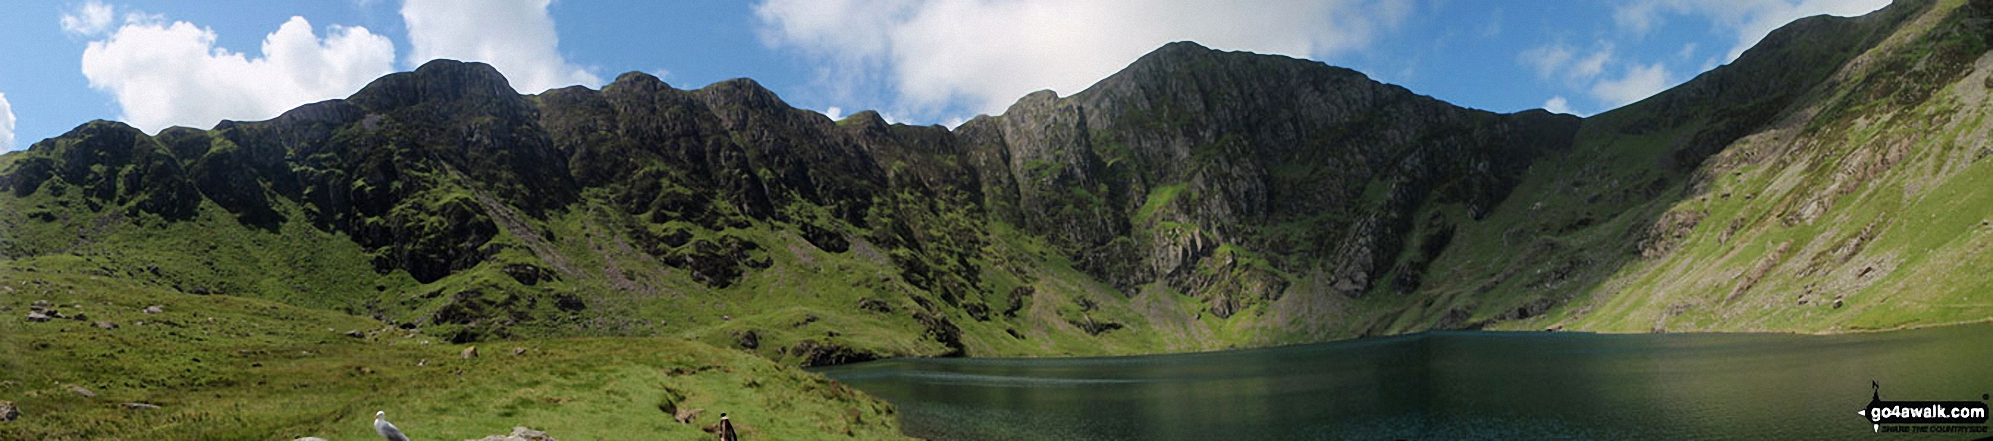 Craig Cwm Amarch (left), Craig Cau and Cadair Idris (Penygadair)(right) from The Minffordd Path at Llyn Cau